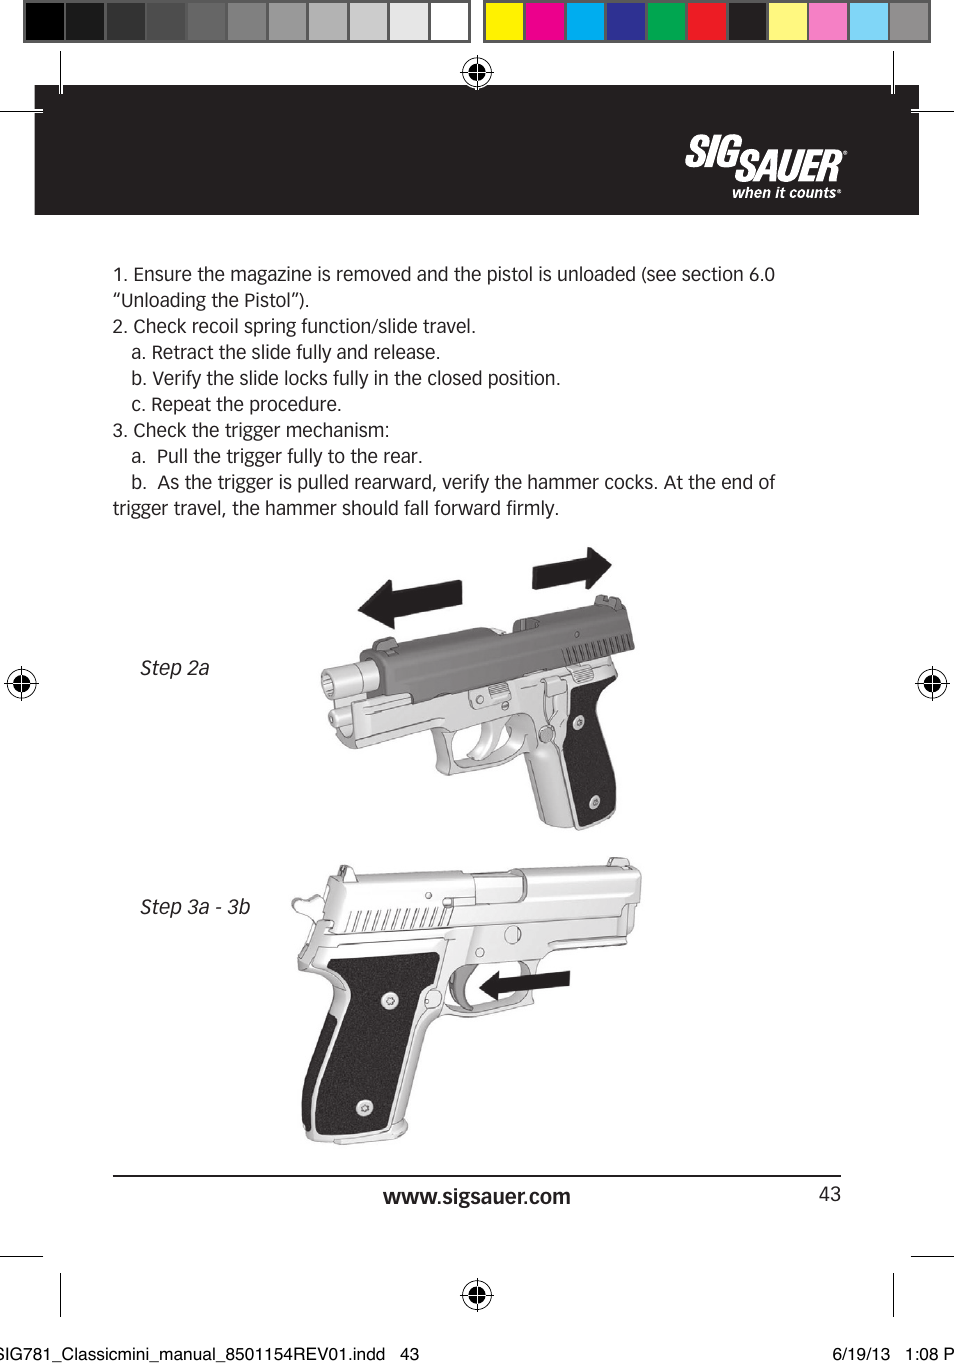 sig p229 owners manual best setting instruction guide u2022 rh ourk9 co sig sauer owner's manual sig sauer p210 owner's manual